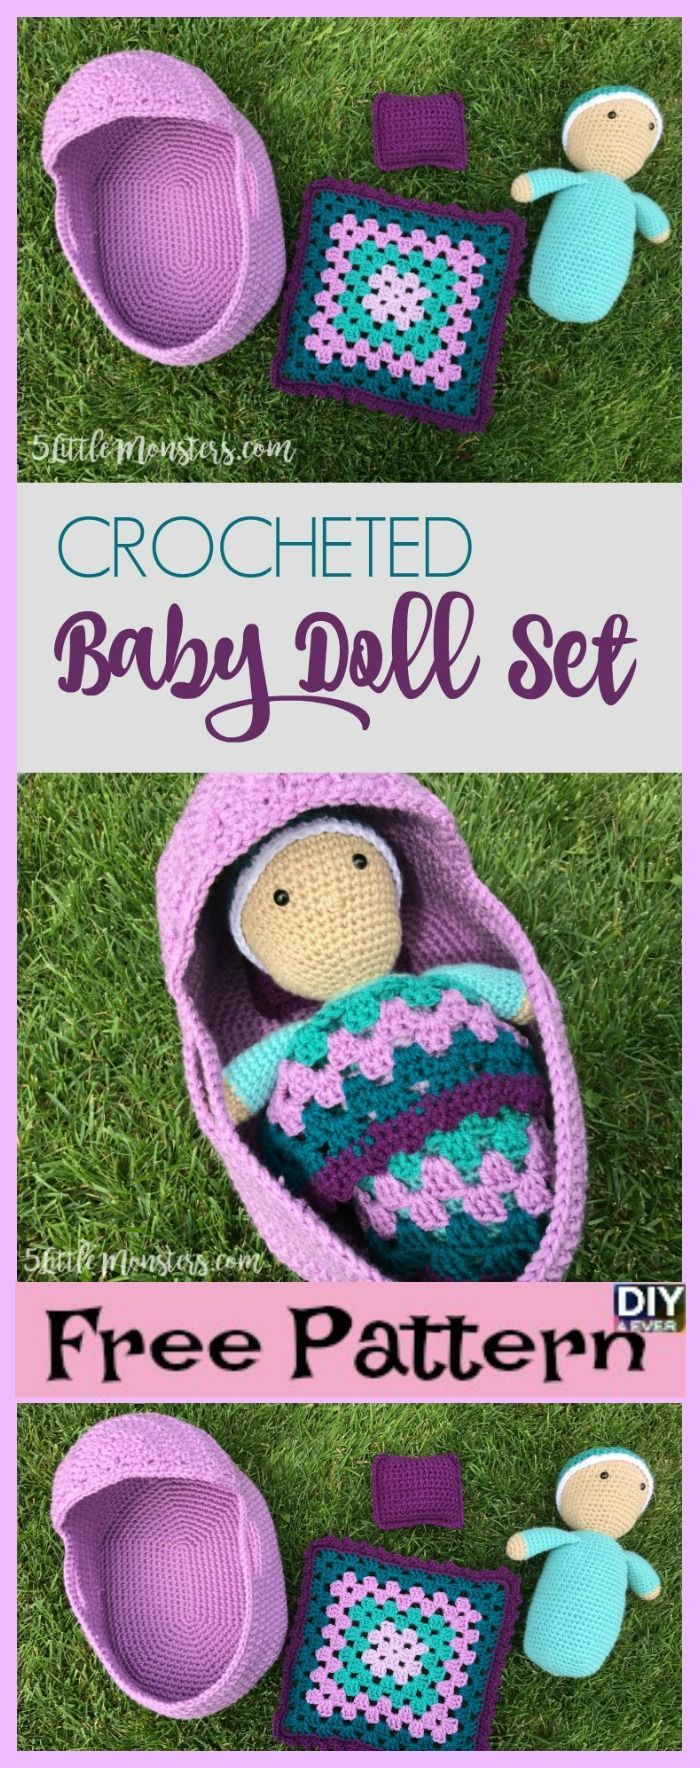 diy4ever- Crocheted Baby Doll Set Free Pattern Video #freepattern ...